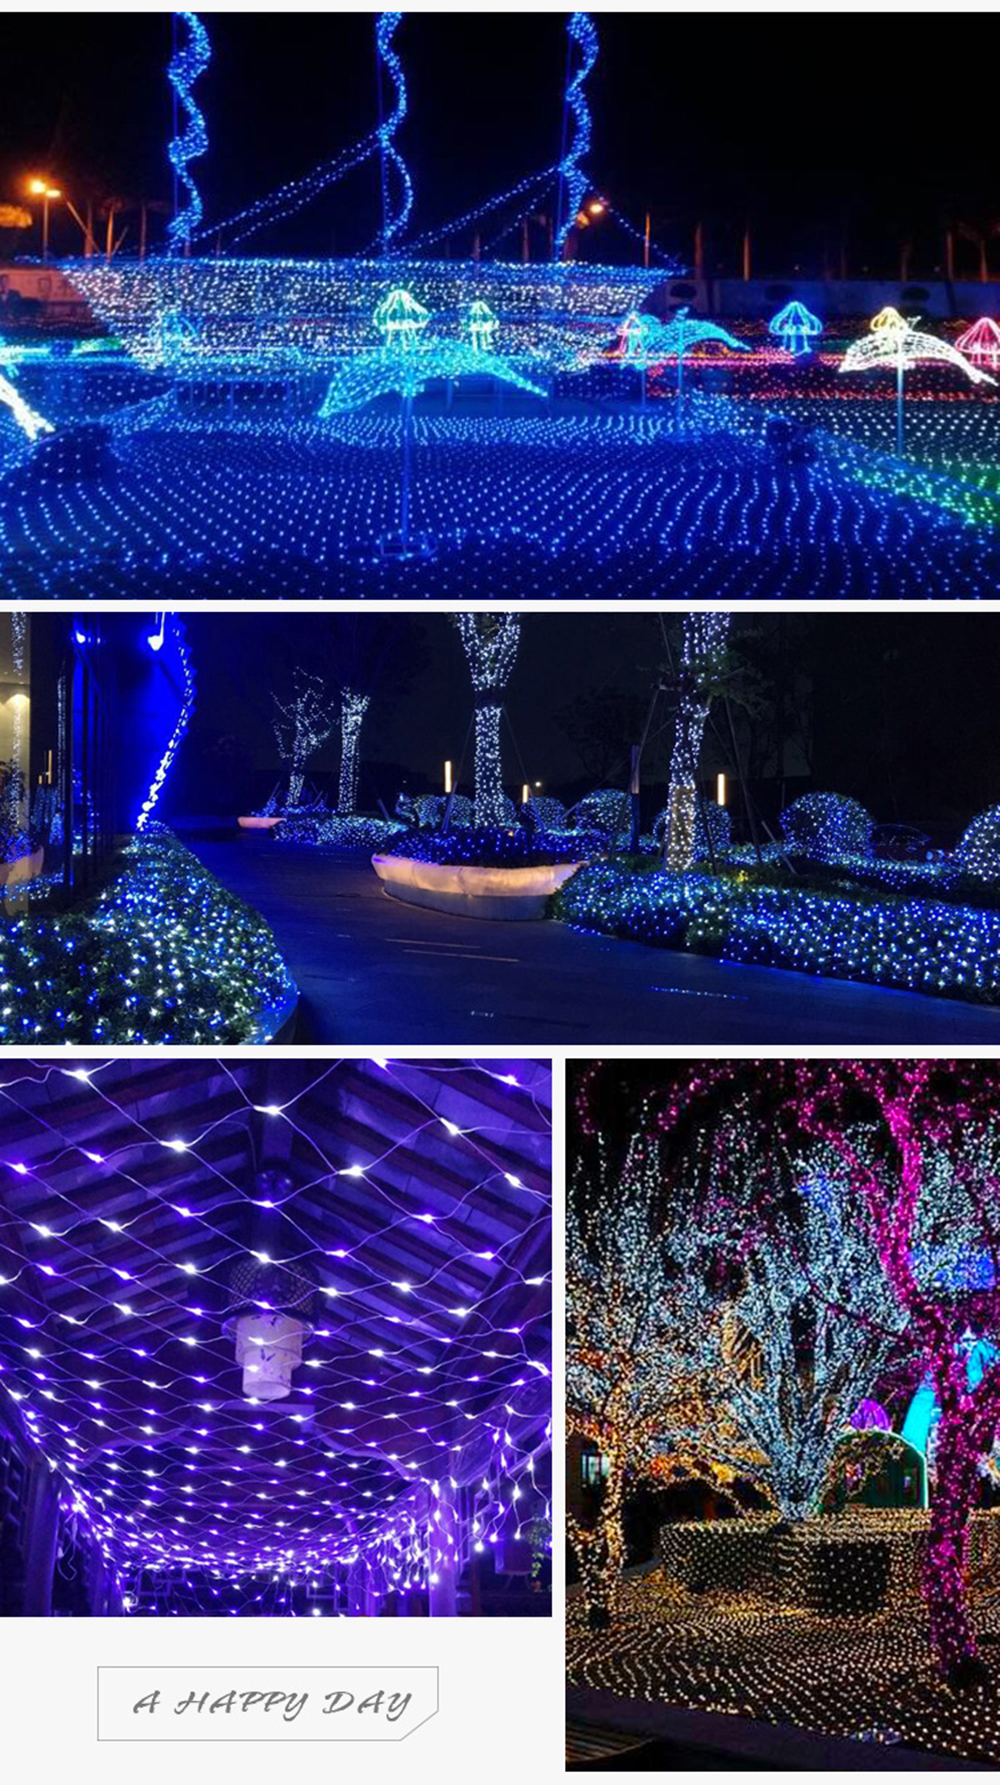 BRELONG 96LED Network lights 1.5m x 1.5m Outdoor waterproof star light string 220V EU